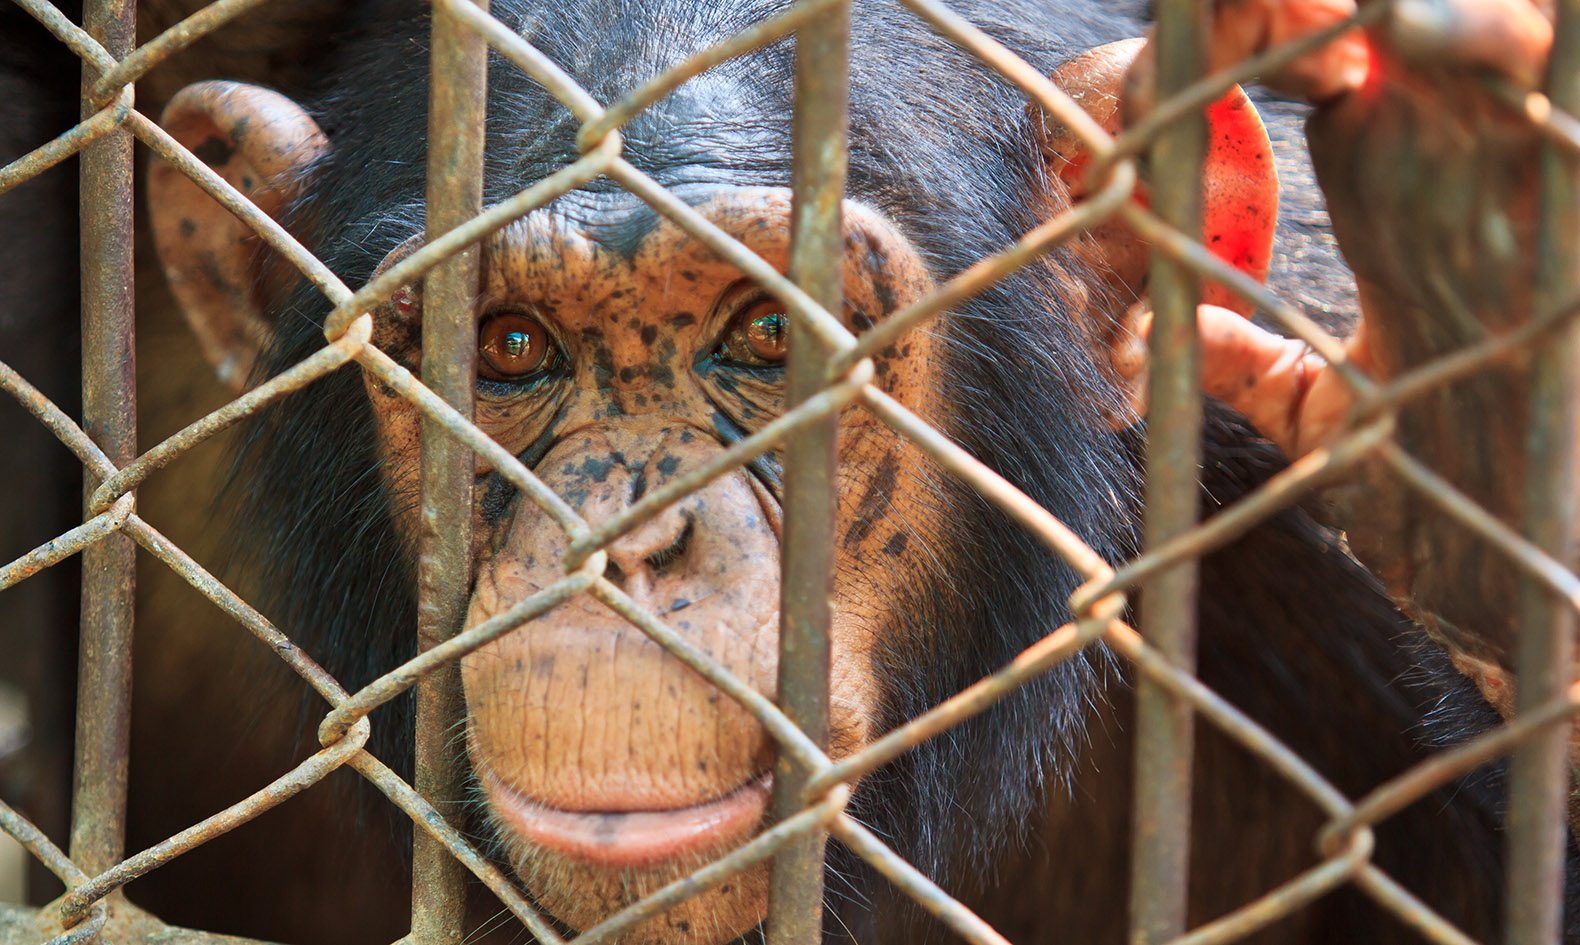 Chimpanzees in medical research